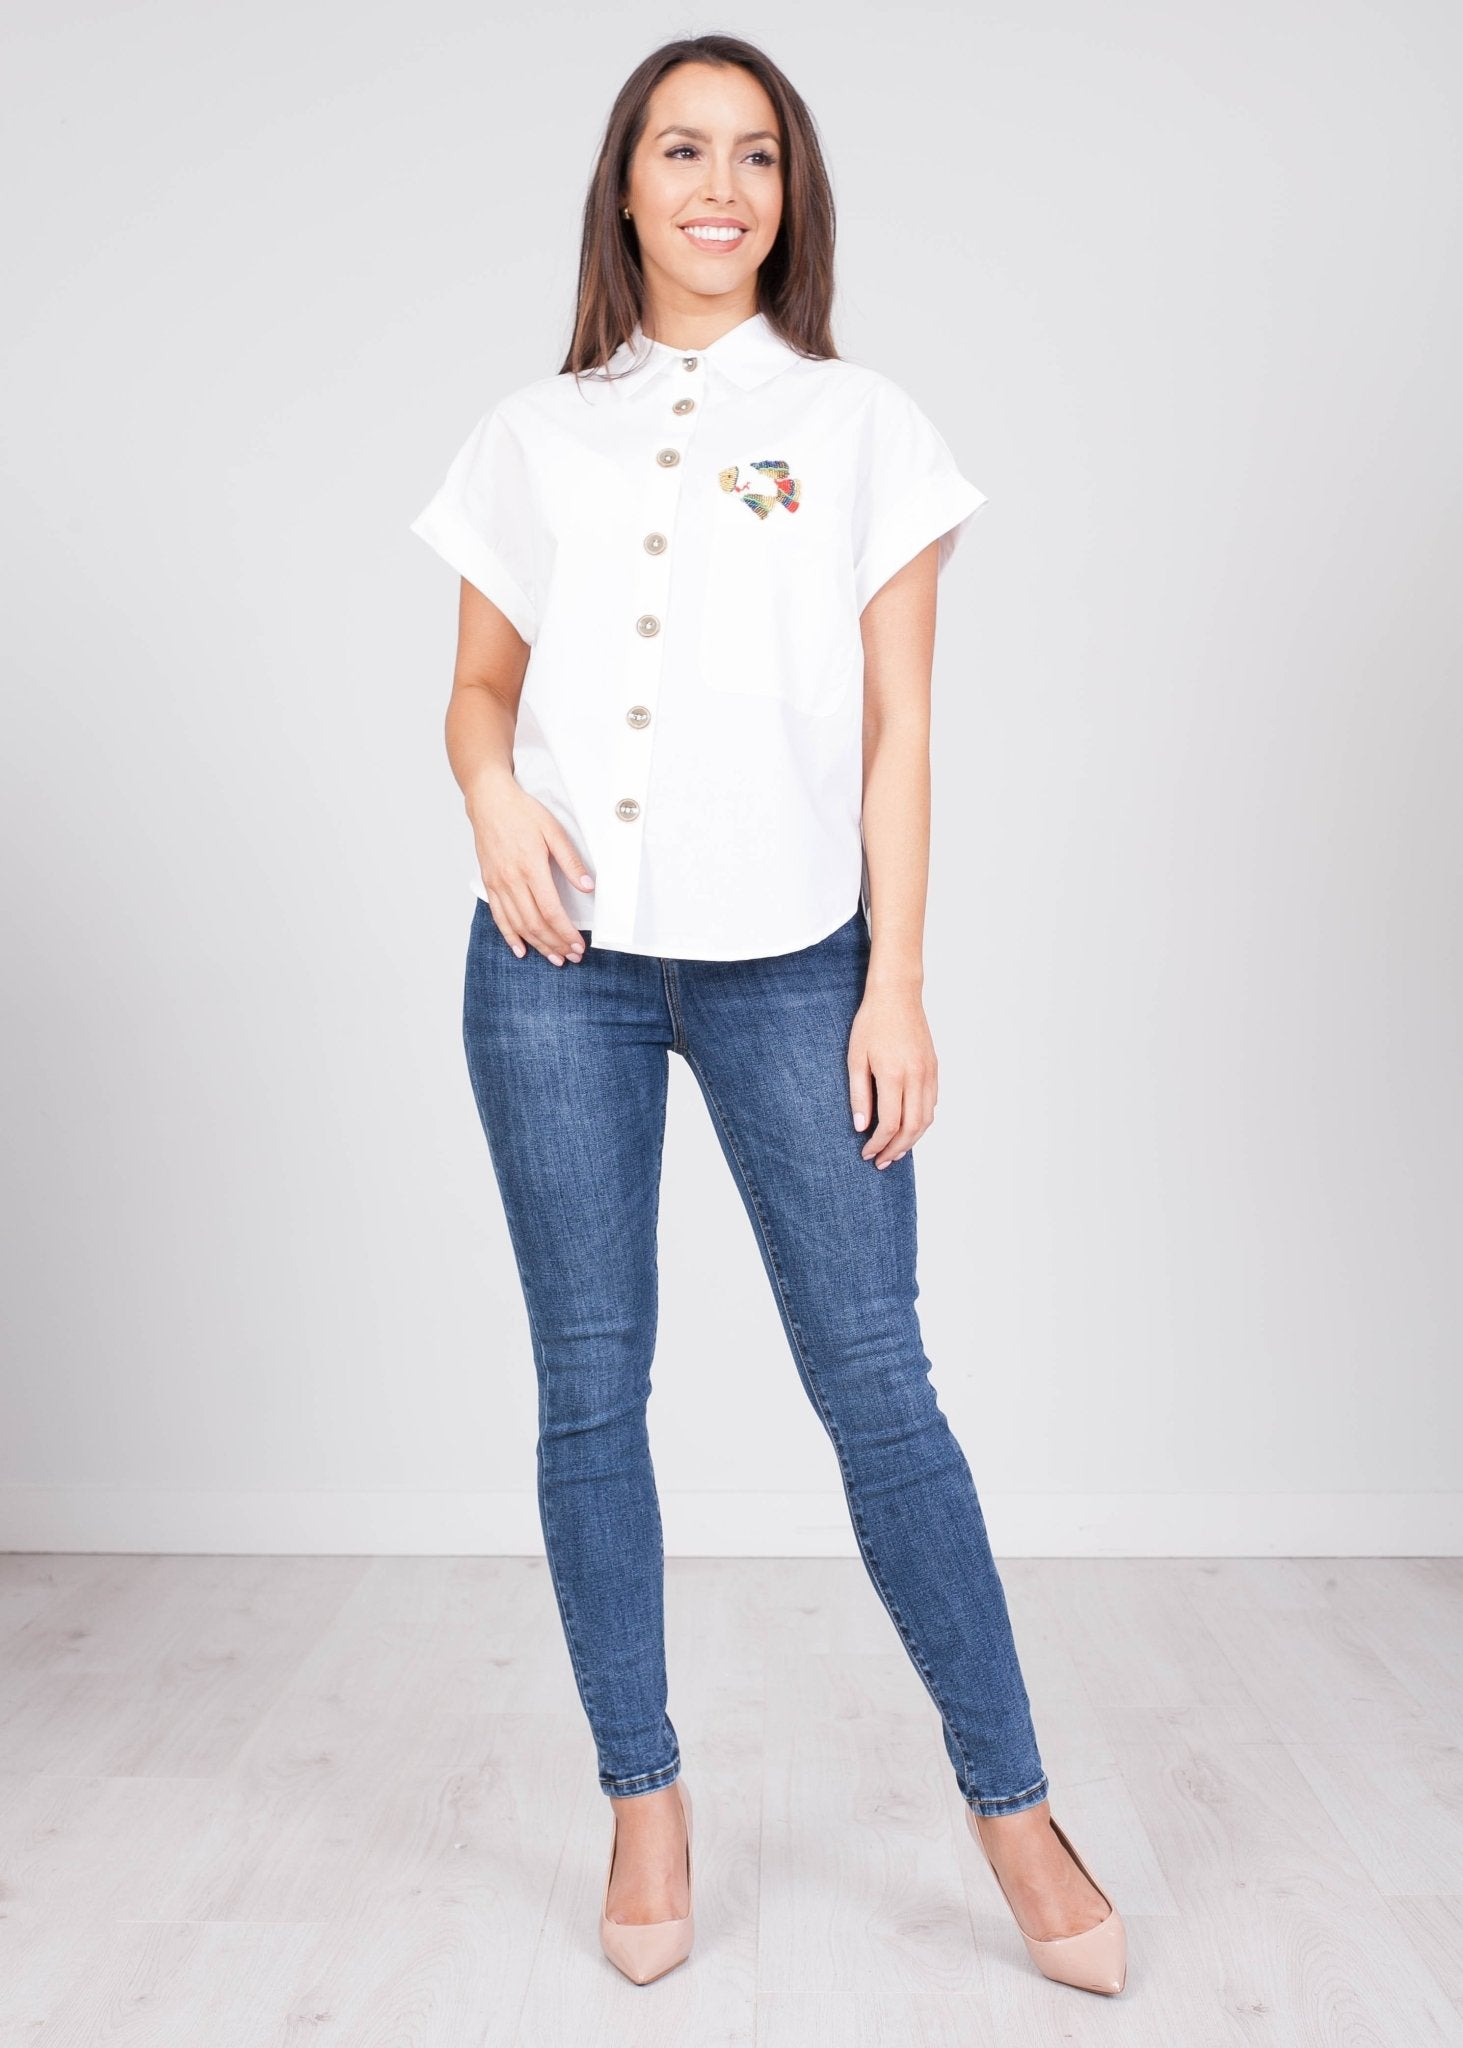 Eva Embellished Pocket Shirt - The Walk in Wardrobe